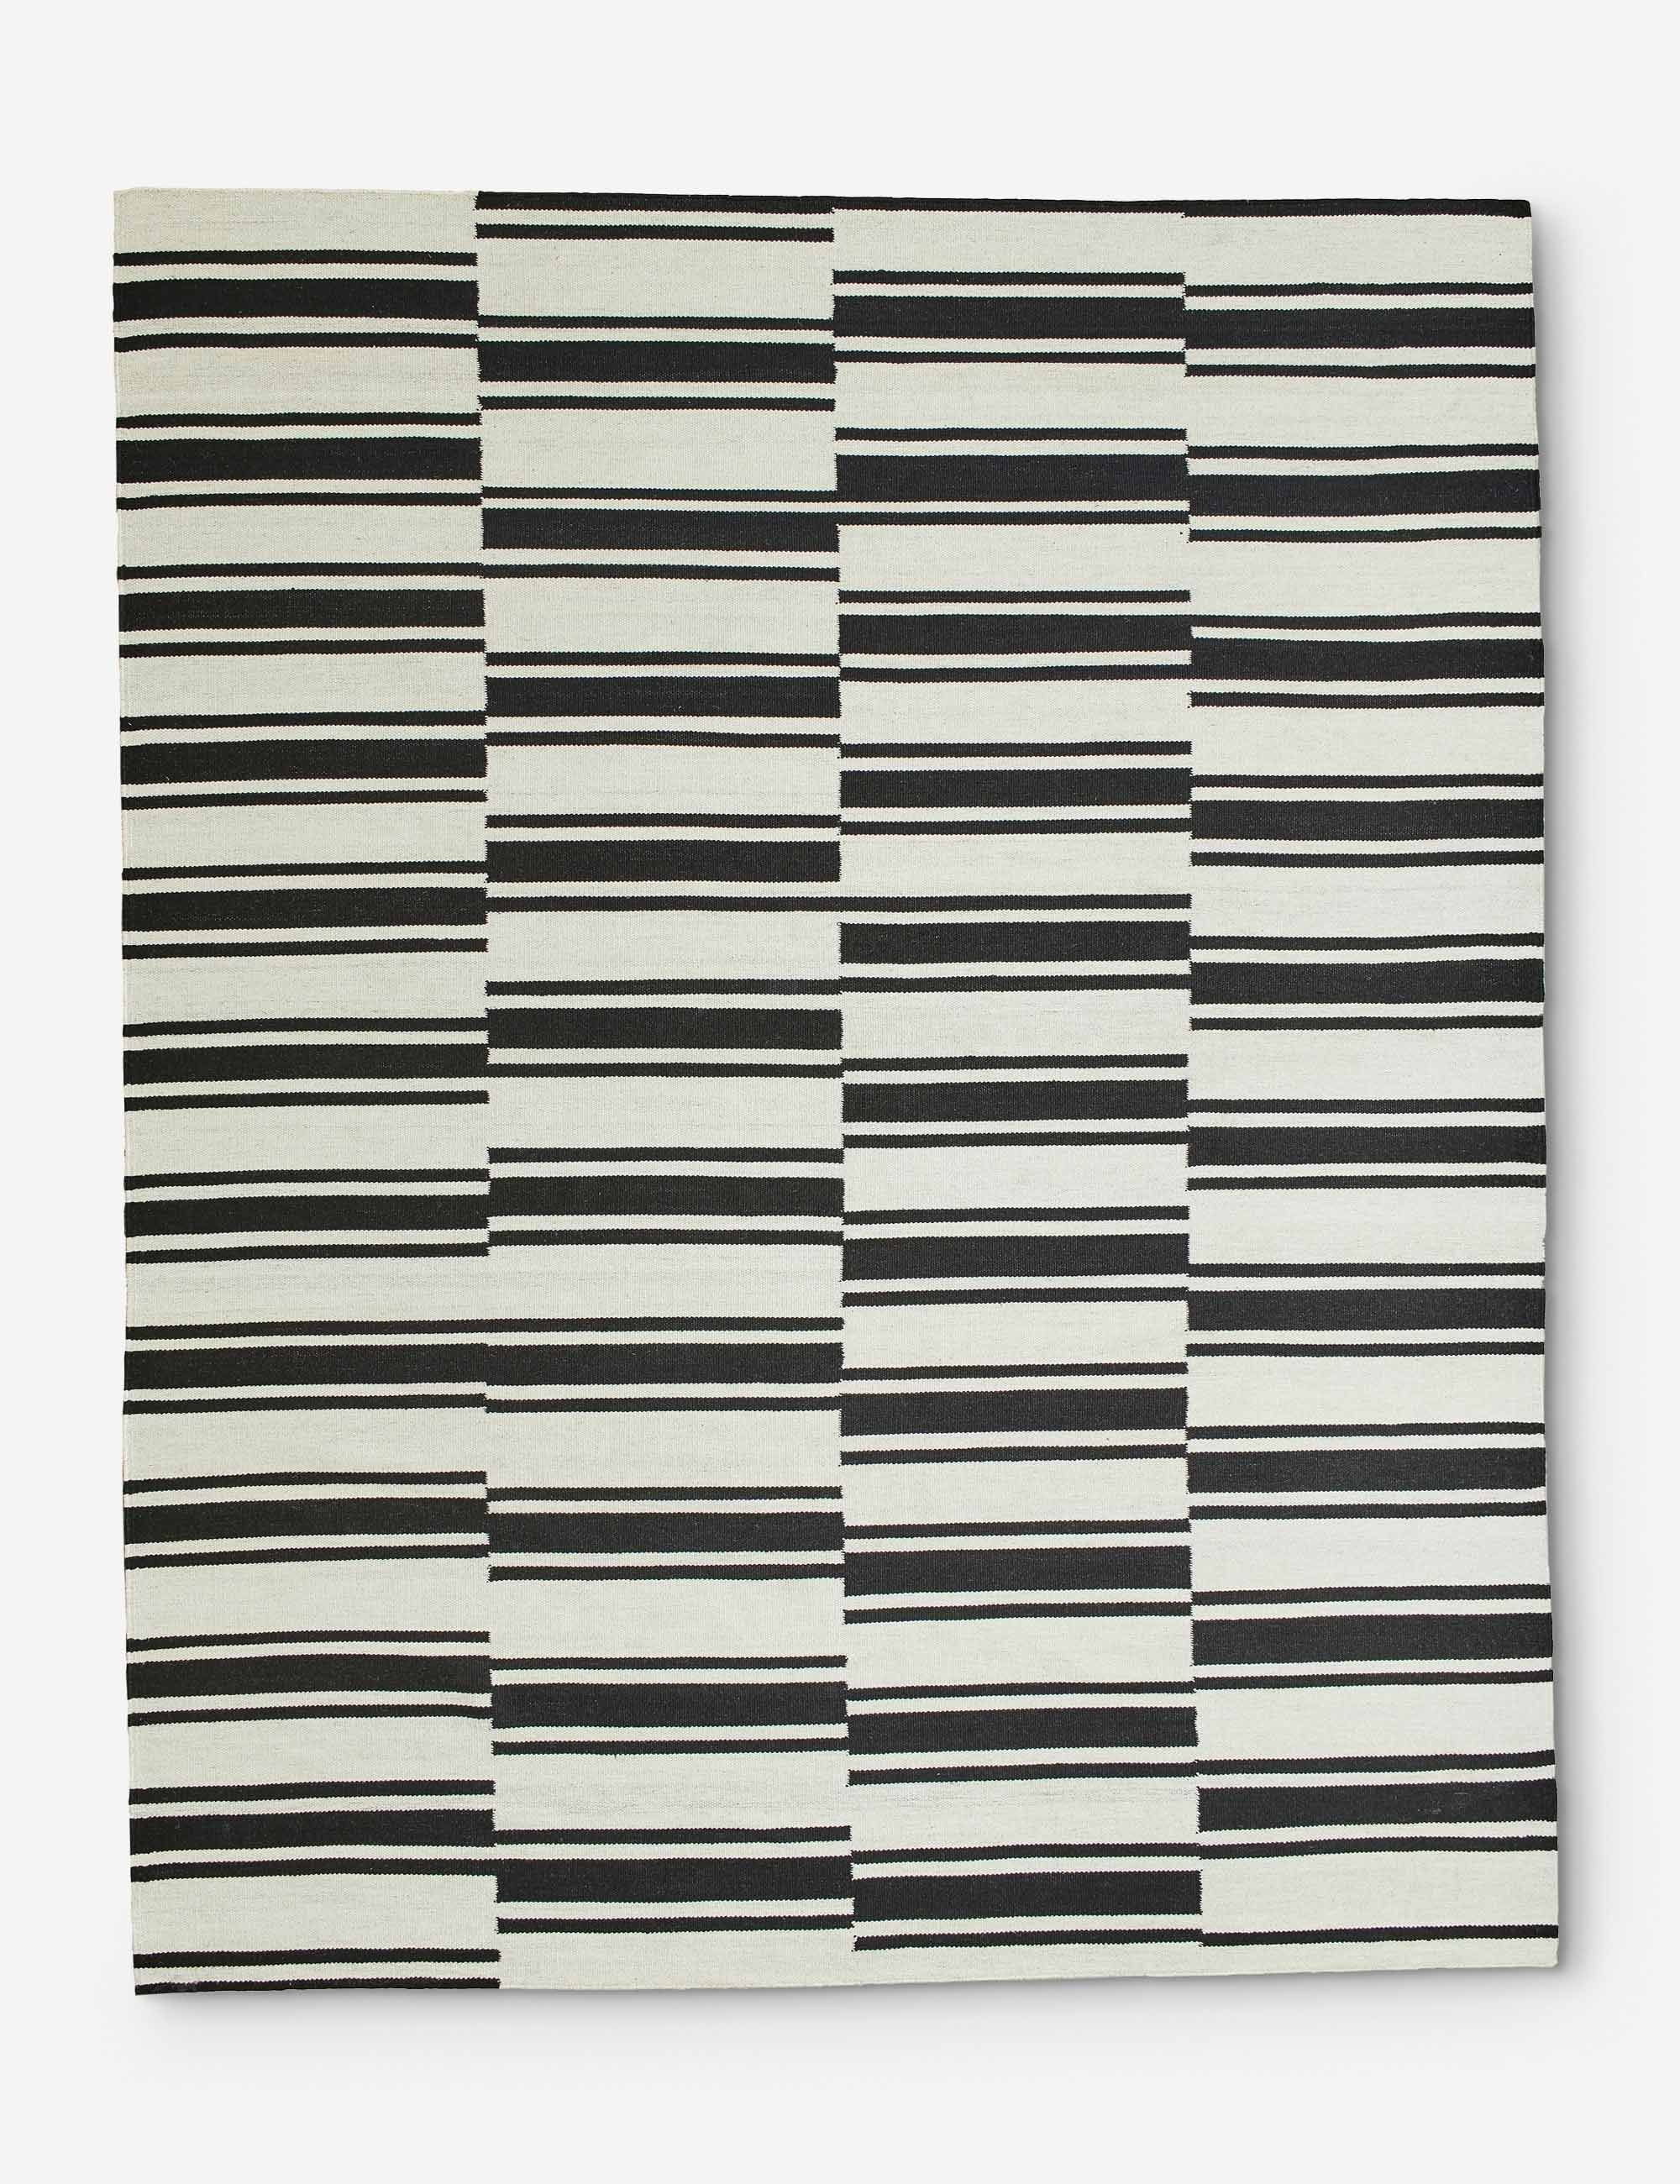 Kye Rug Black And White 8 X 10 In 2020 White Rug Striped Rug